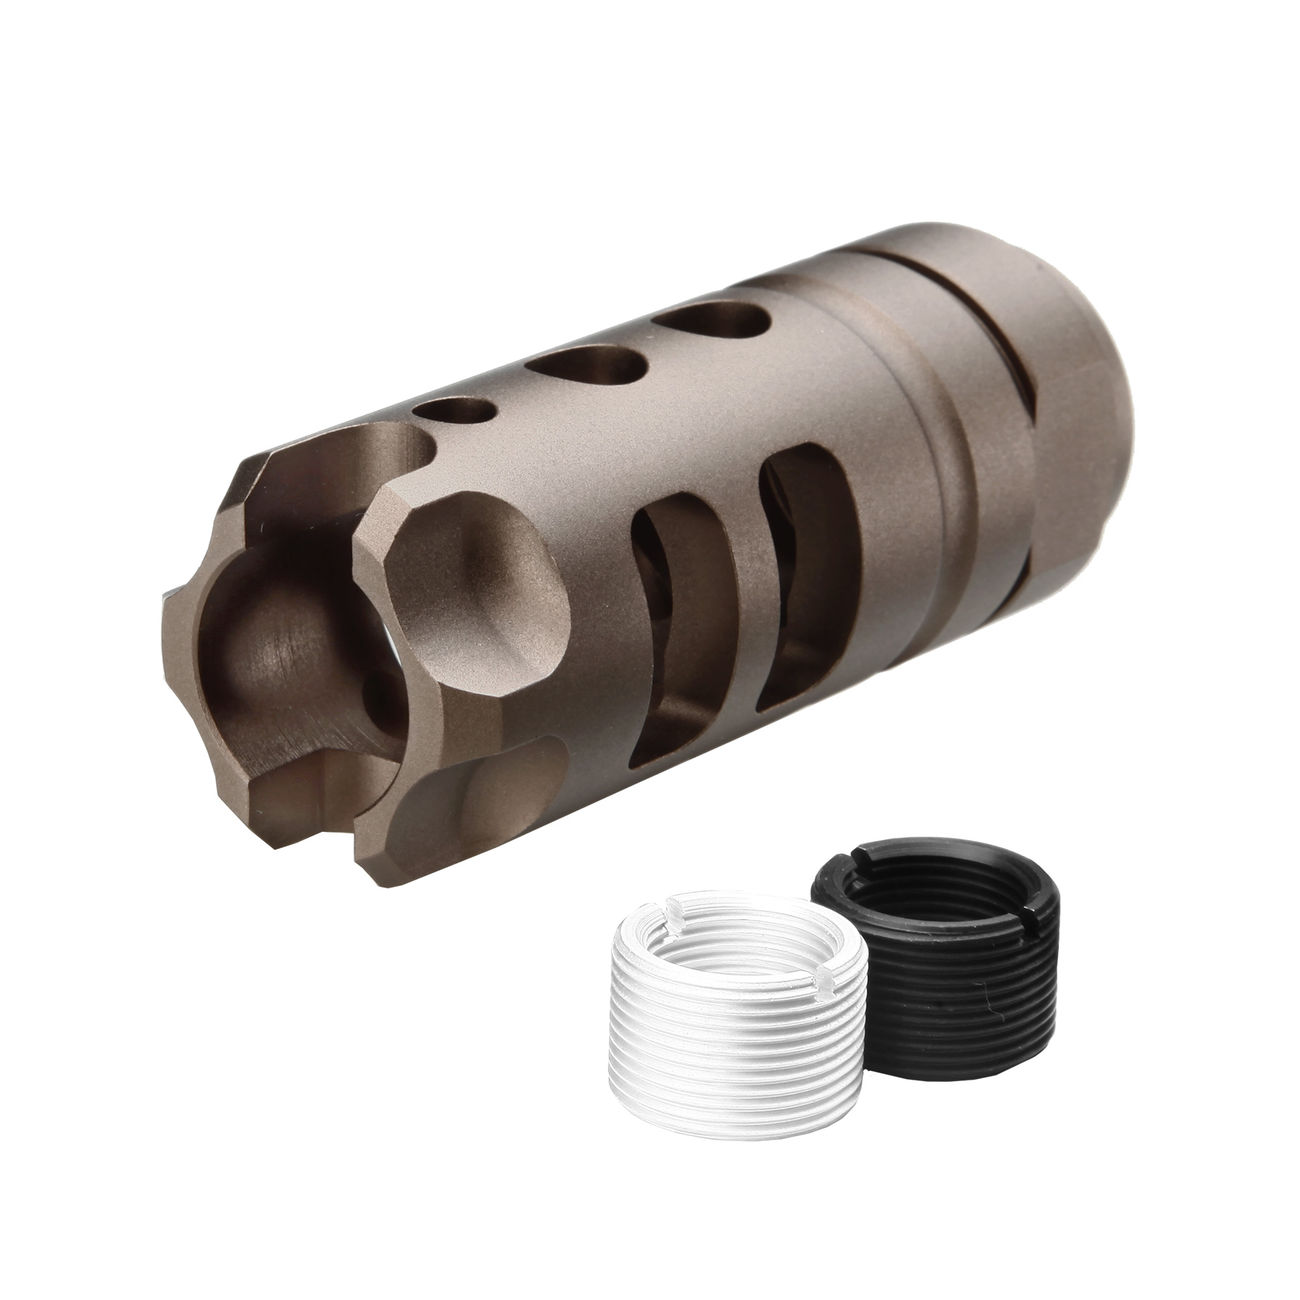 G&P MOTS Style Aluminium Flash-Hider sand 14mm+ / 14mm- 0